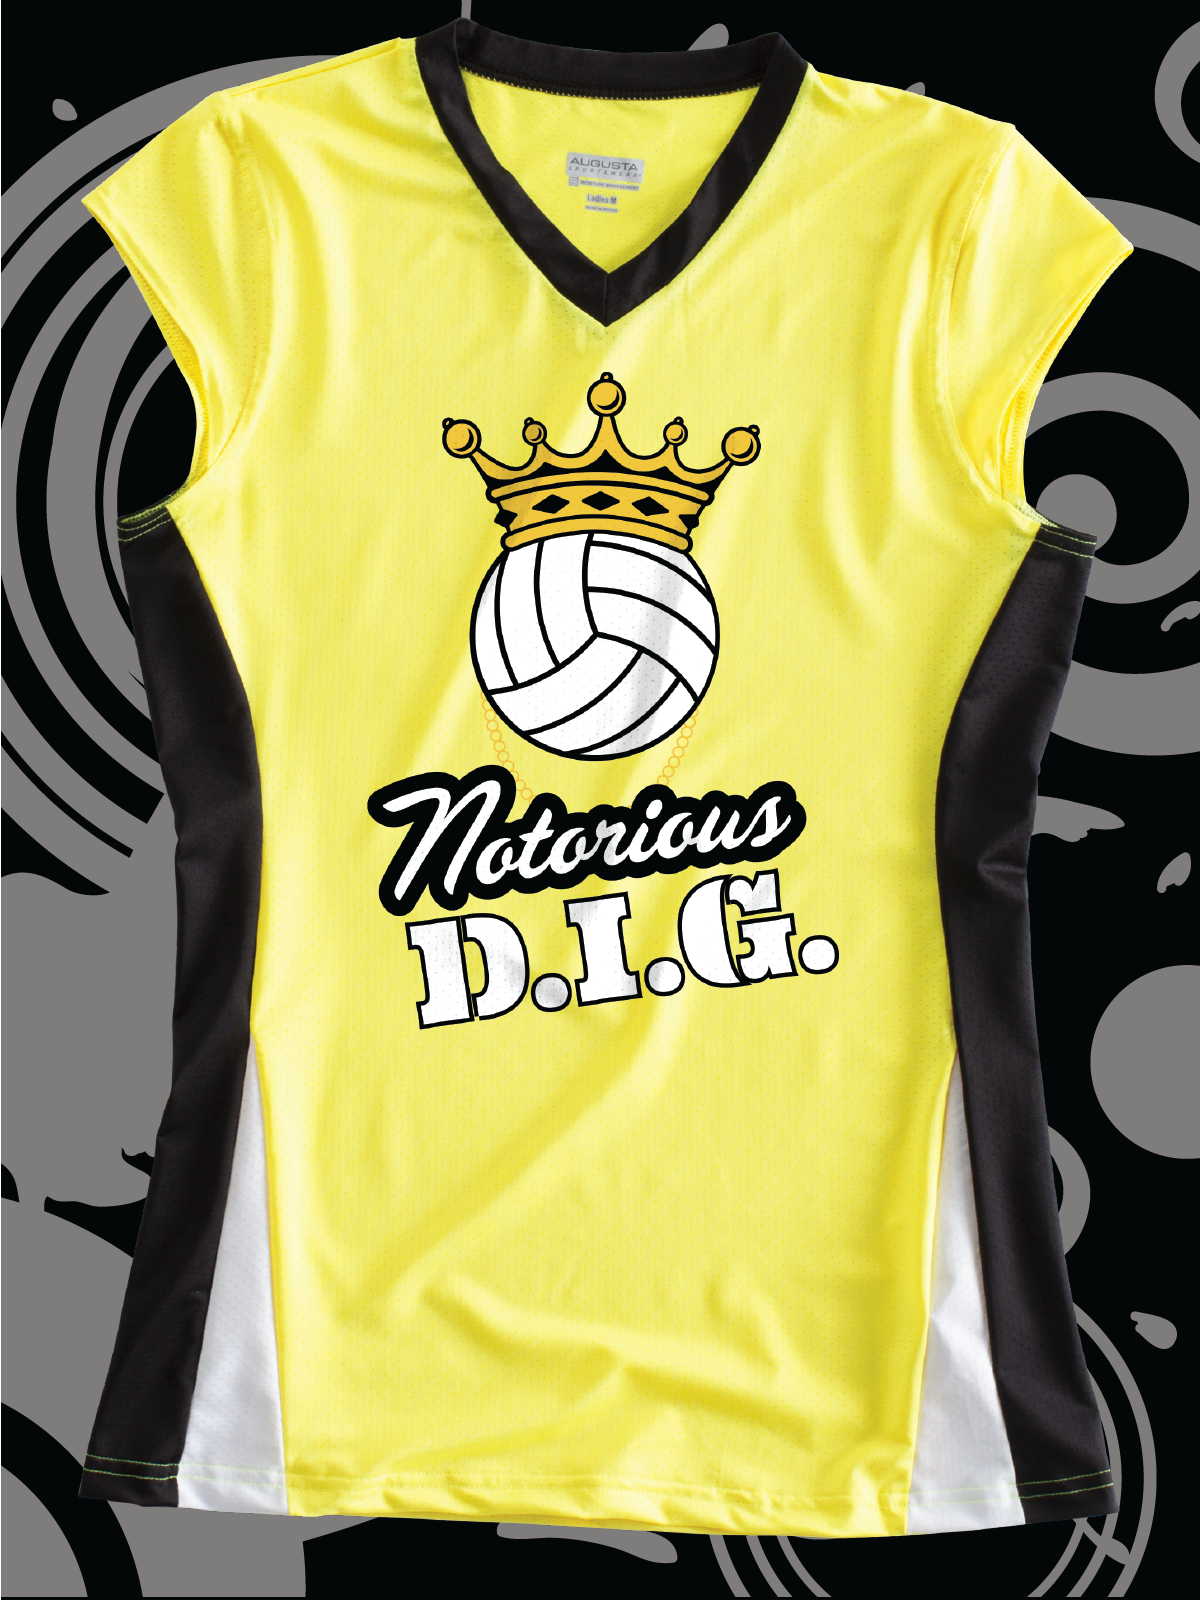 Notorious D I G Funny Design Idea For Custom Volleyball Jerseys Team Shirts T Shirts Tank Volleyball Shirt Designs Funny Volleyball Shirts Team T Shirts